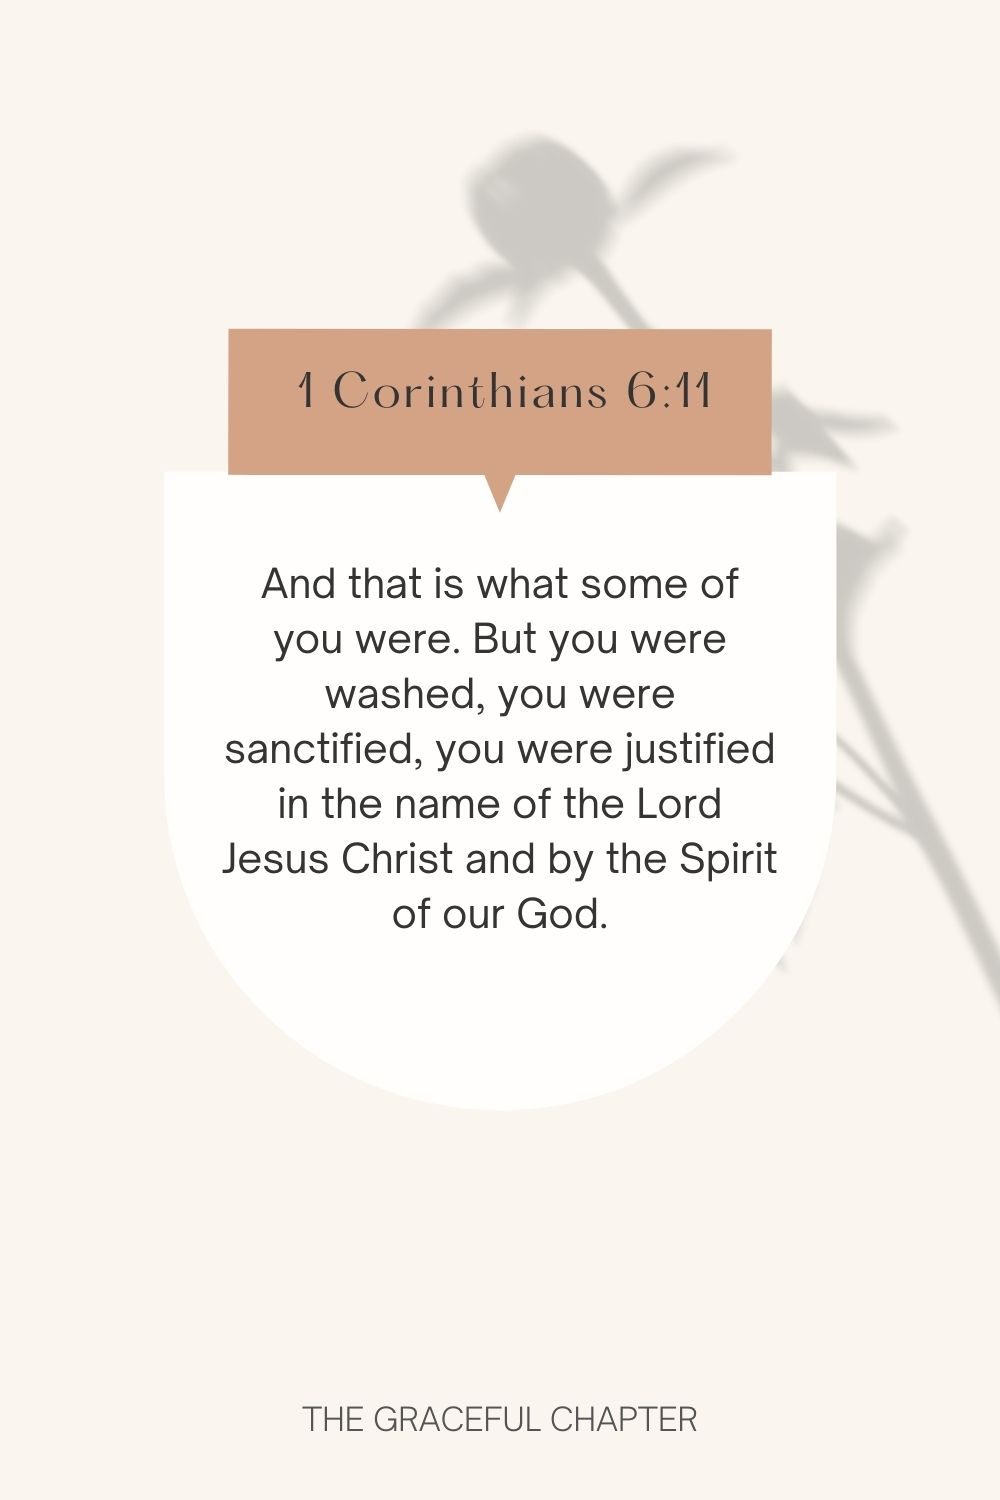 And that is what some of you were. But you were washed, you were sanctified, you were justified in the name of the Lord Jesus Christ and by the Spirit of our God. 1 Corinthians 6:11